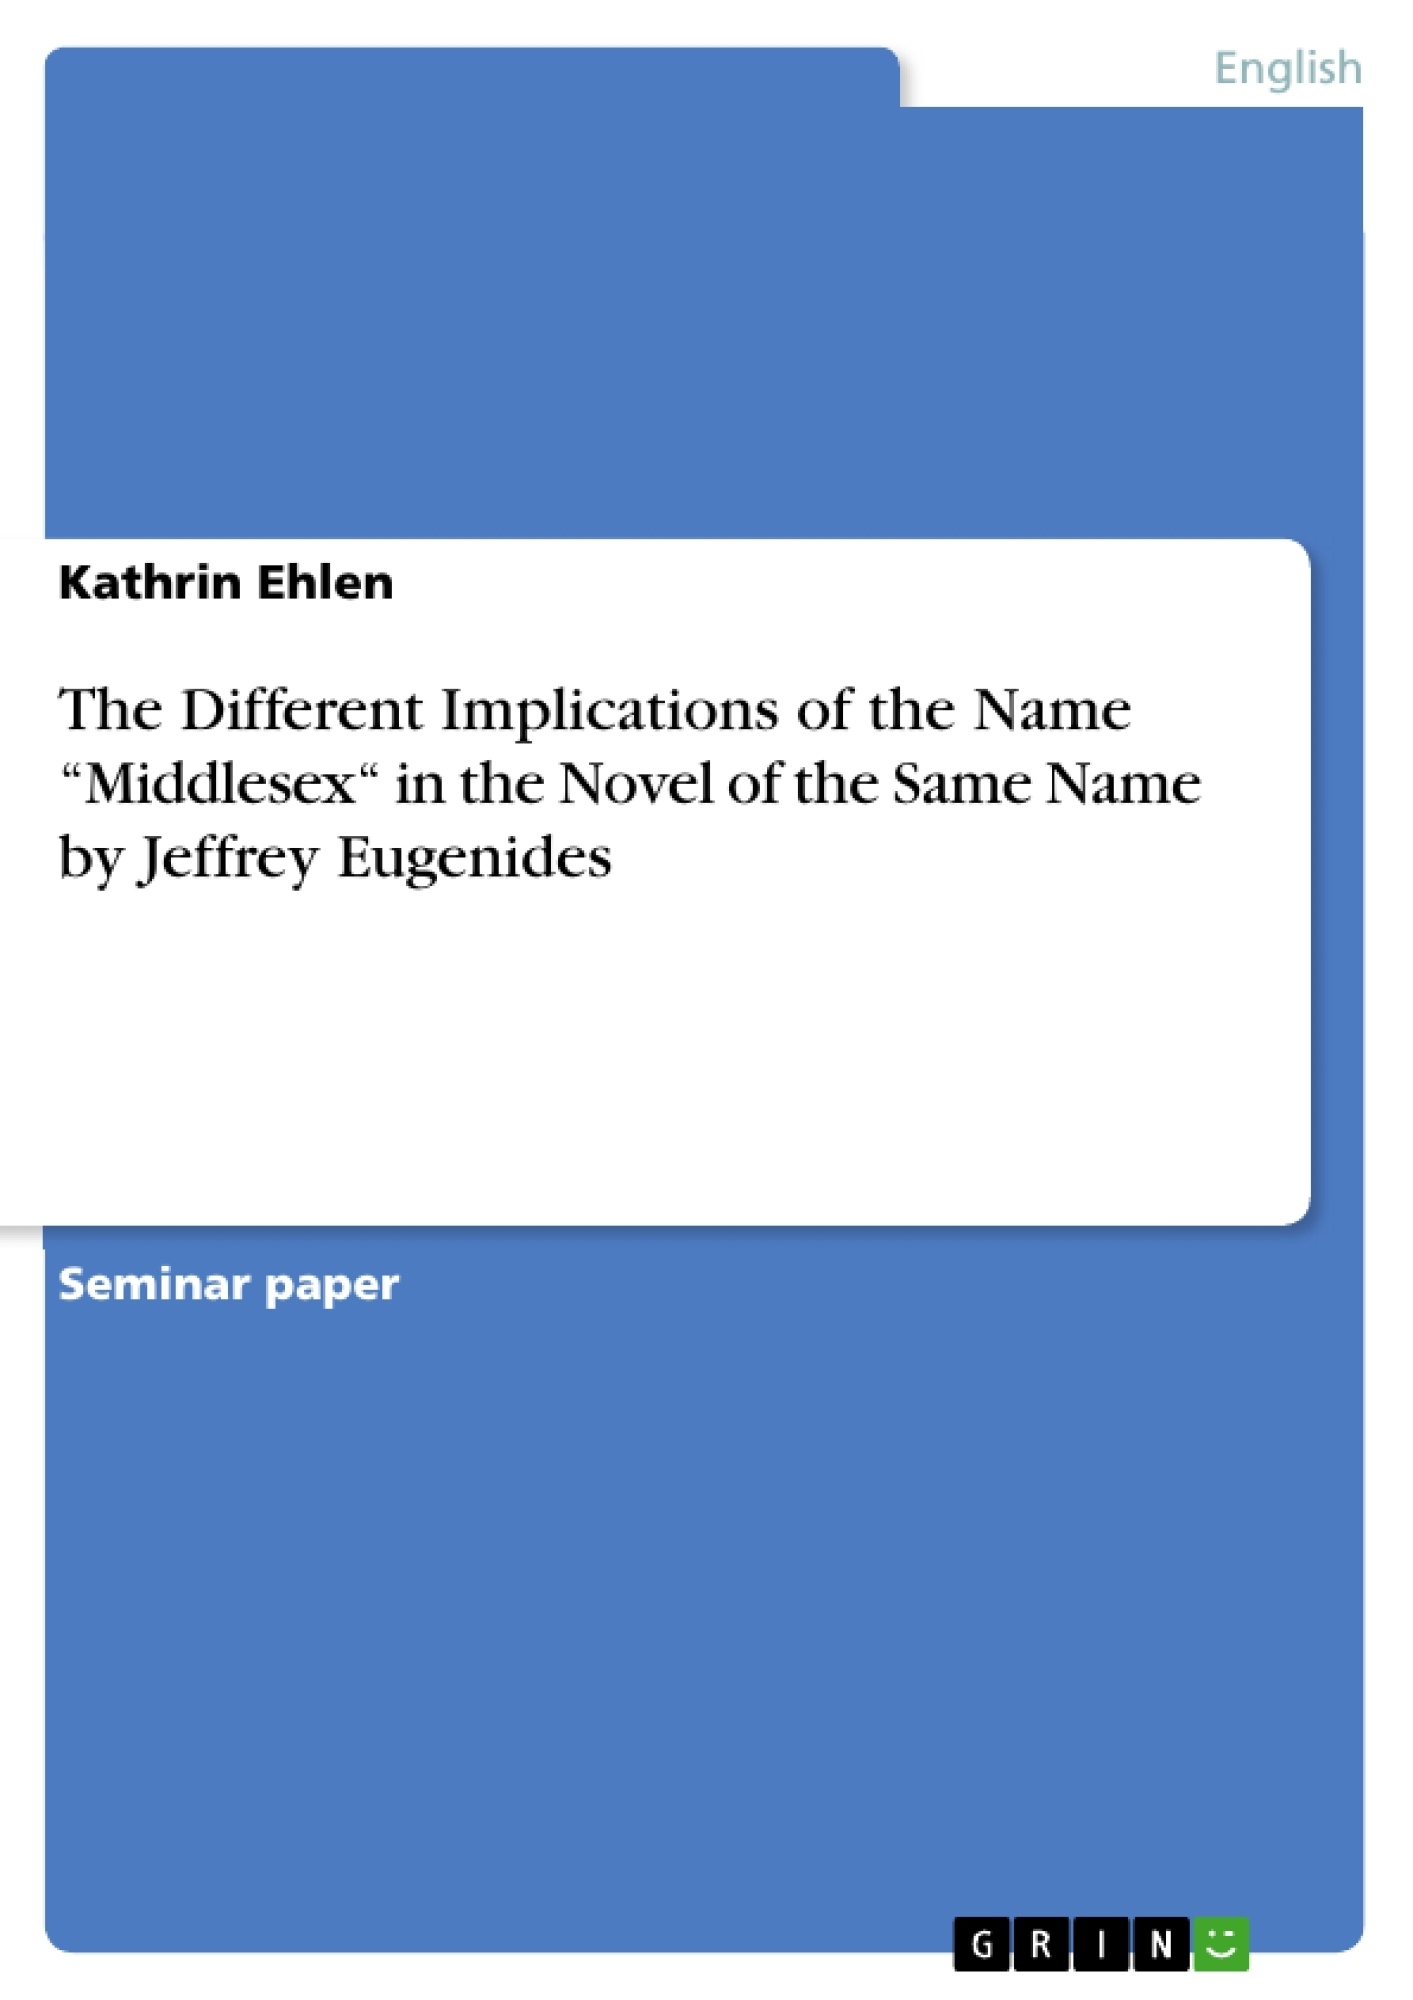 middle by george eliot essays  middle by george eliot essays